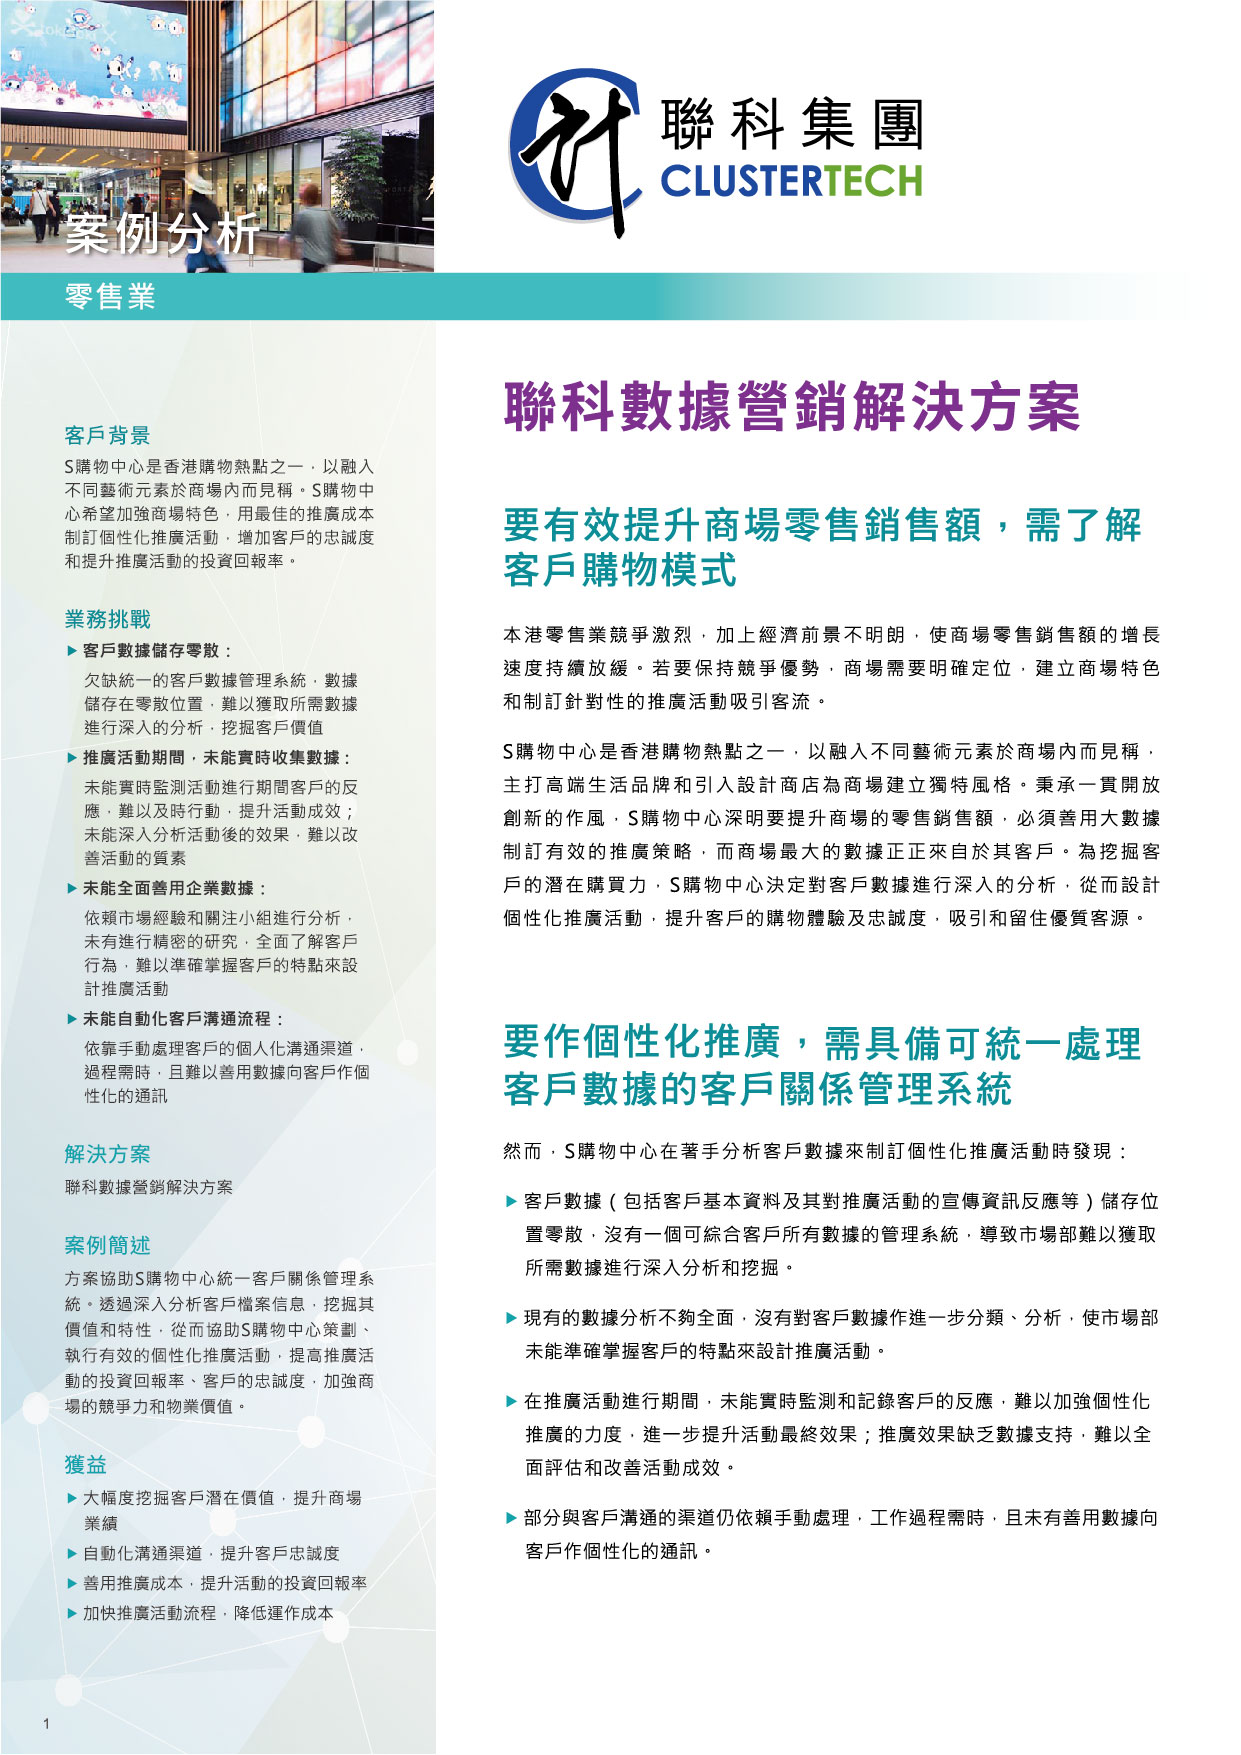 Cover - Retail Marketing Analytics Case Study - Shopping Mall (Traditional Chinese).jpg